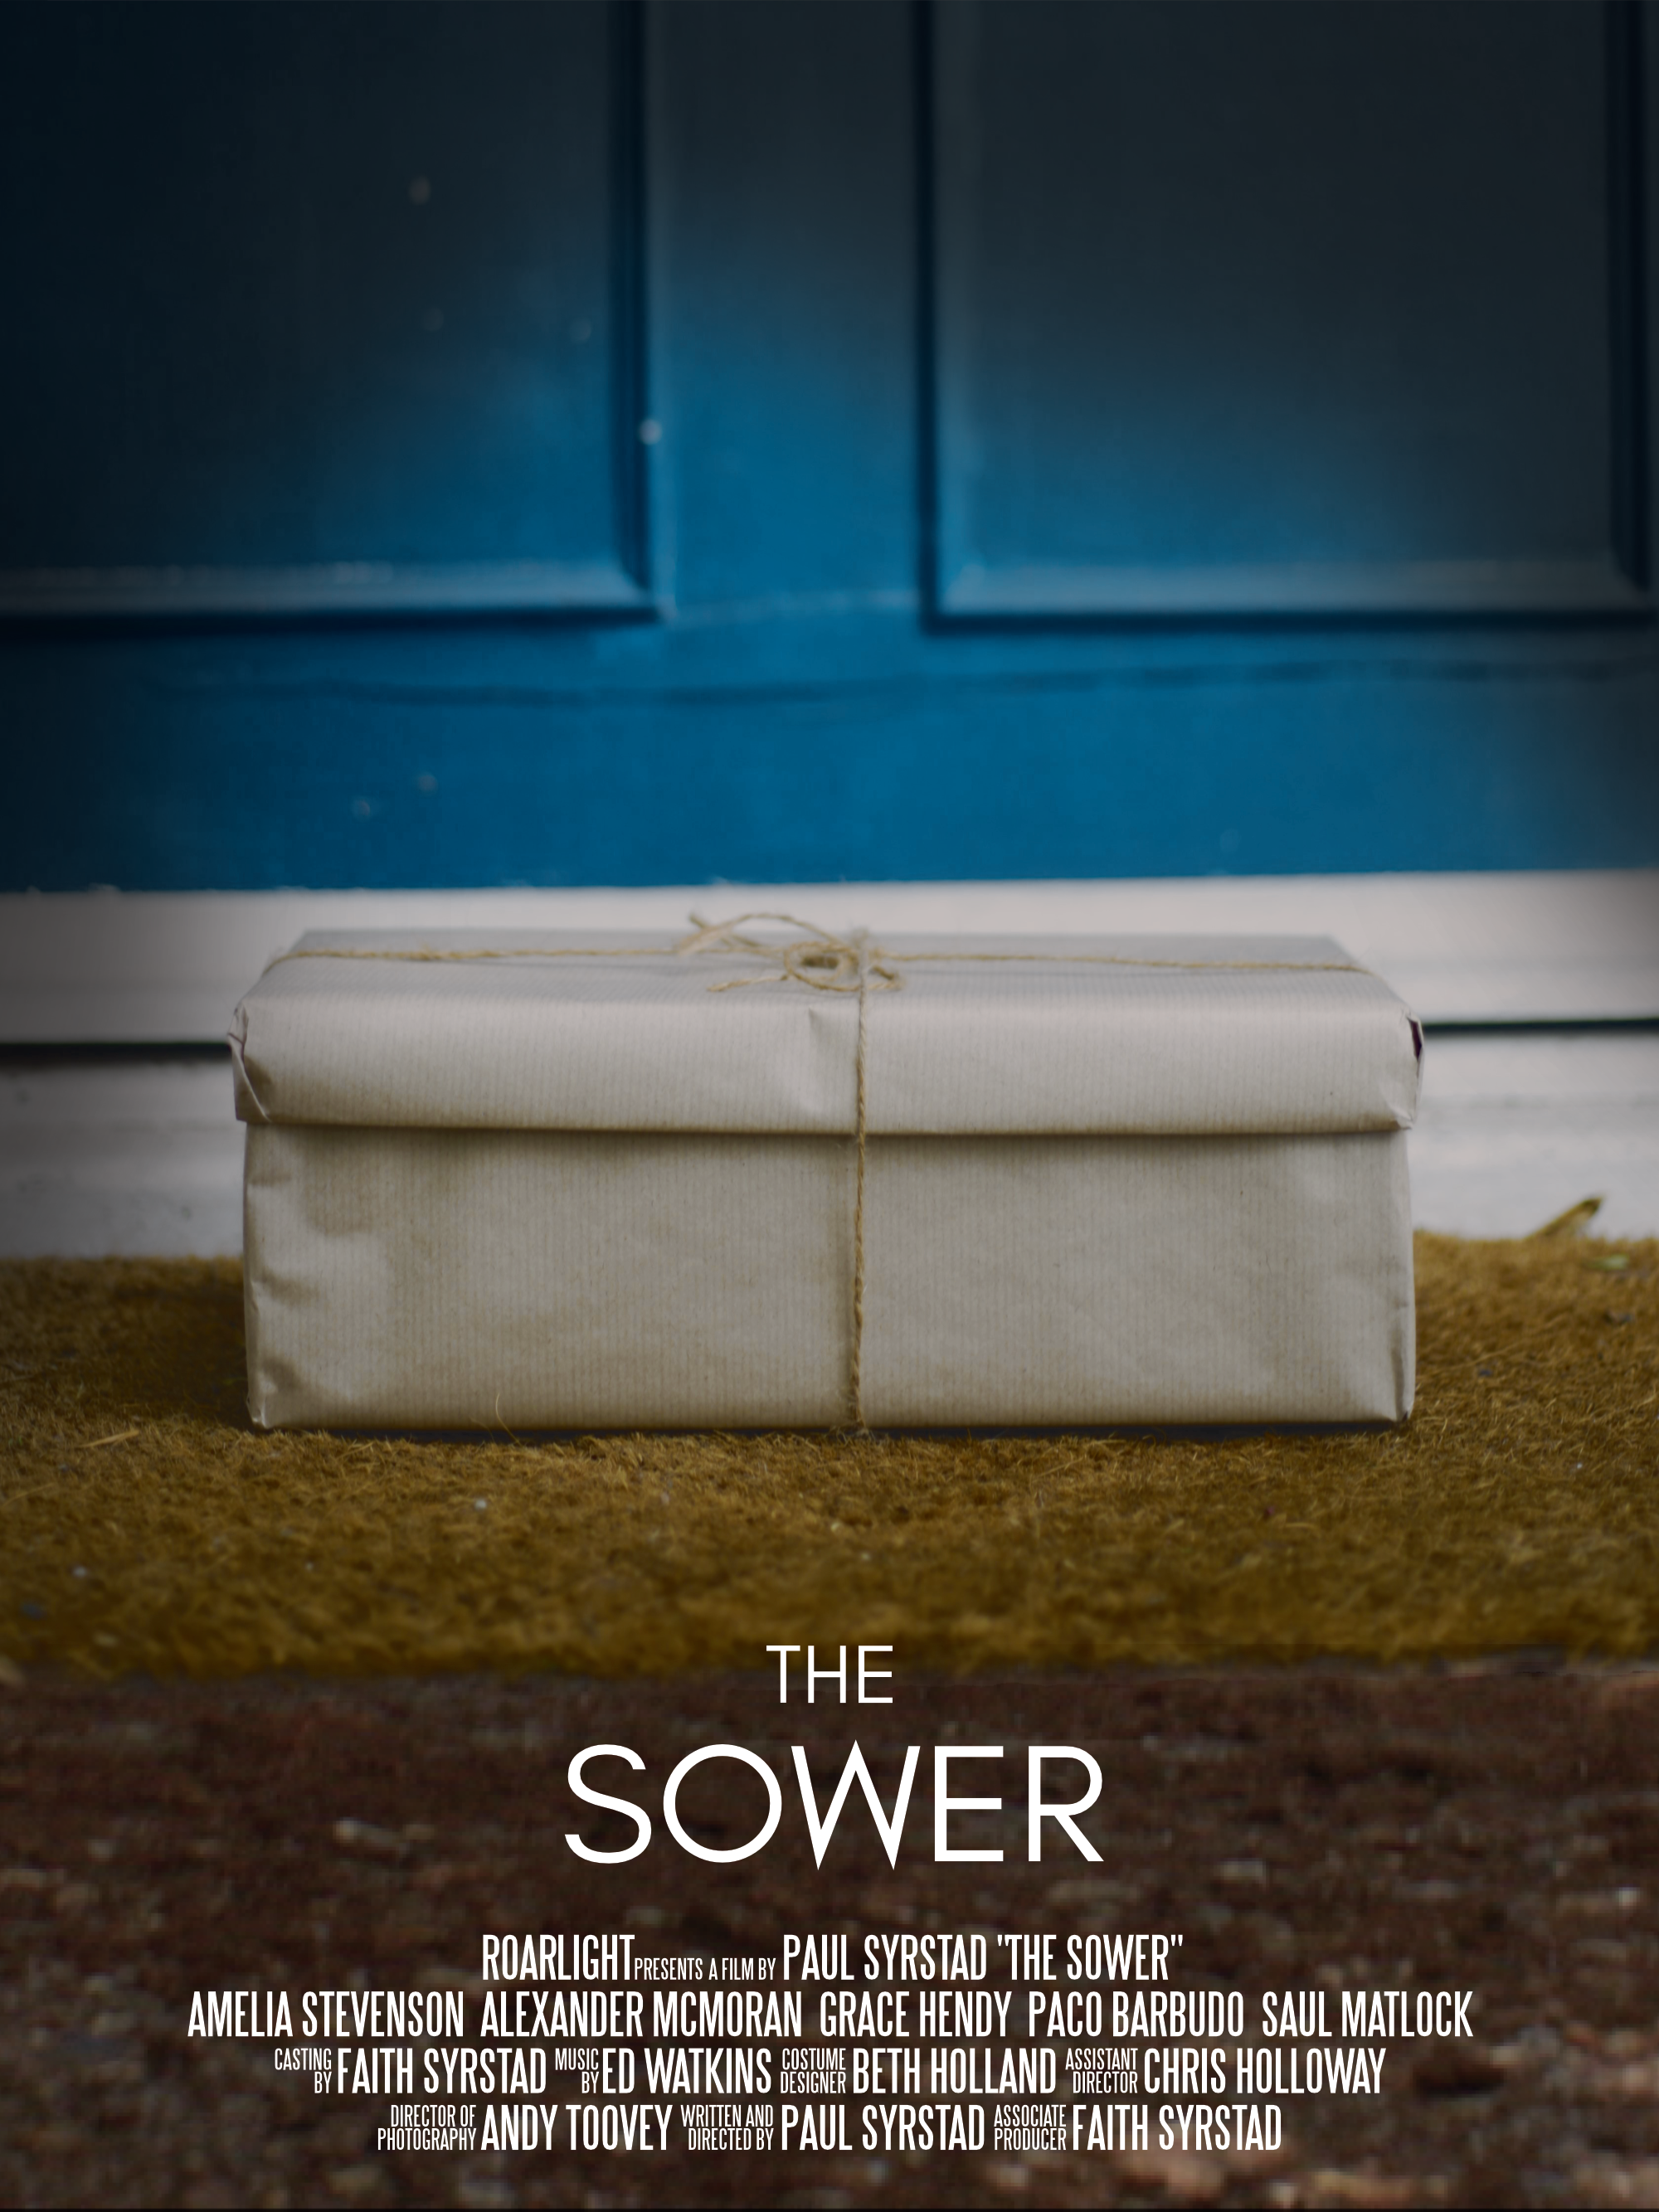 The Sower - When four individuals receive a mysterious gift on their doorstep, an equally mysterious man tries to make them get rid of it.